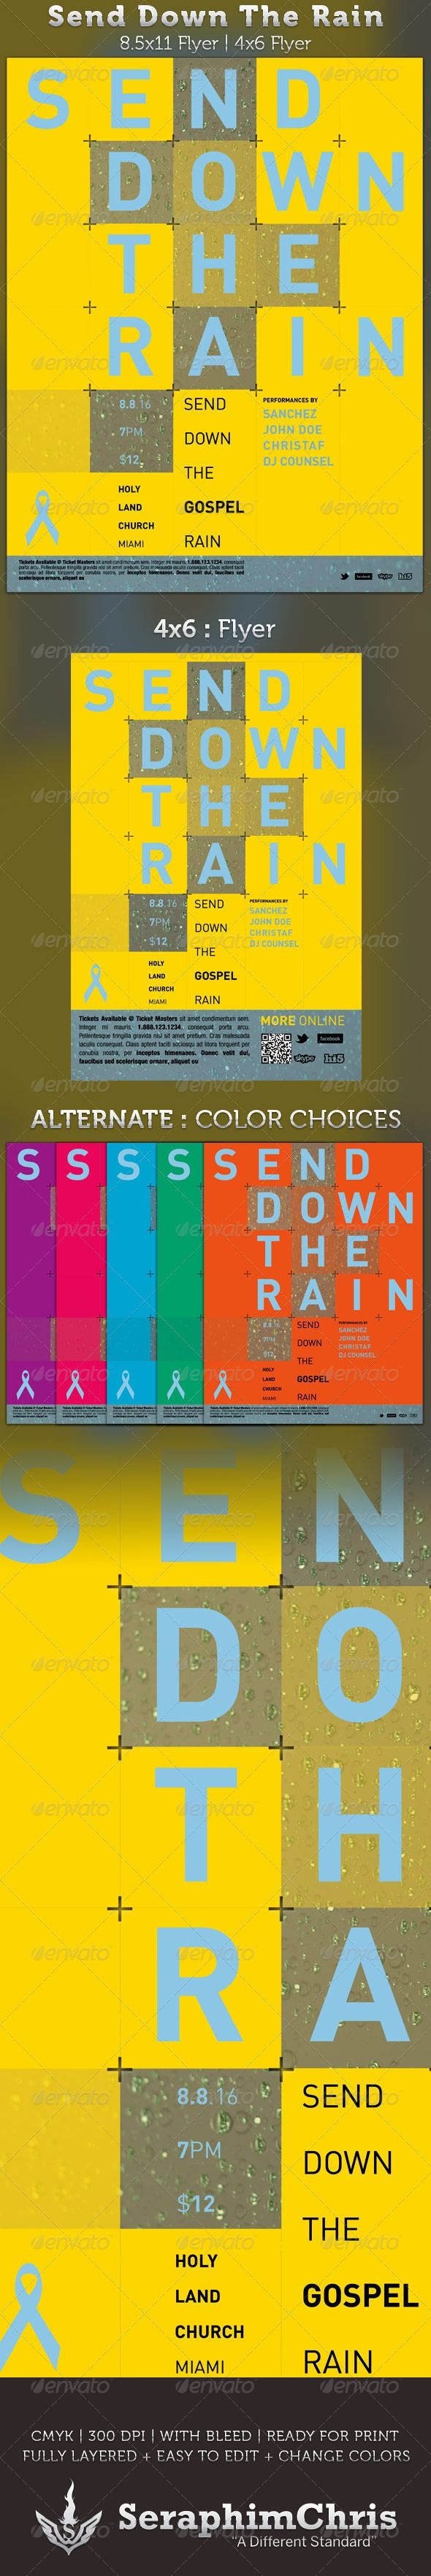 Send Down the Rain Gospel Concert FLyer - GraphicRiver Item for Sale